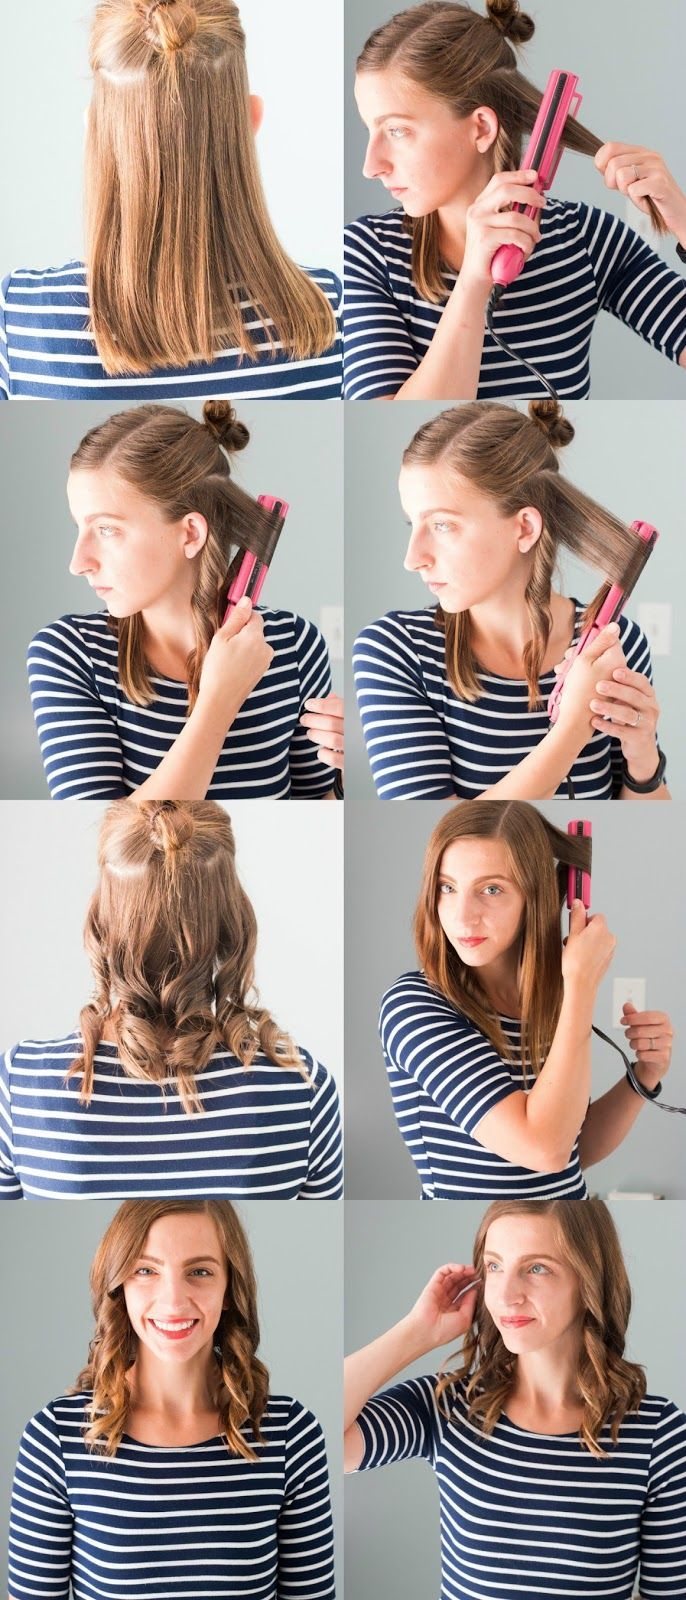 How I Keep My Hair Healthy How To Get Perfect And Easy Flat Iron Curls With W Curl Hair With Straightener Curling Hair With Flat Iron Curls With Straightener